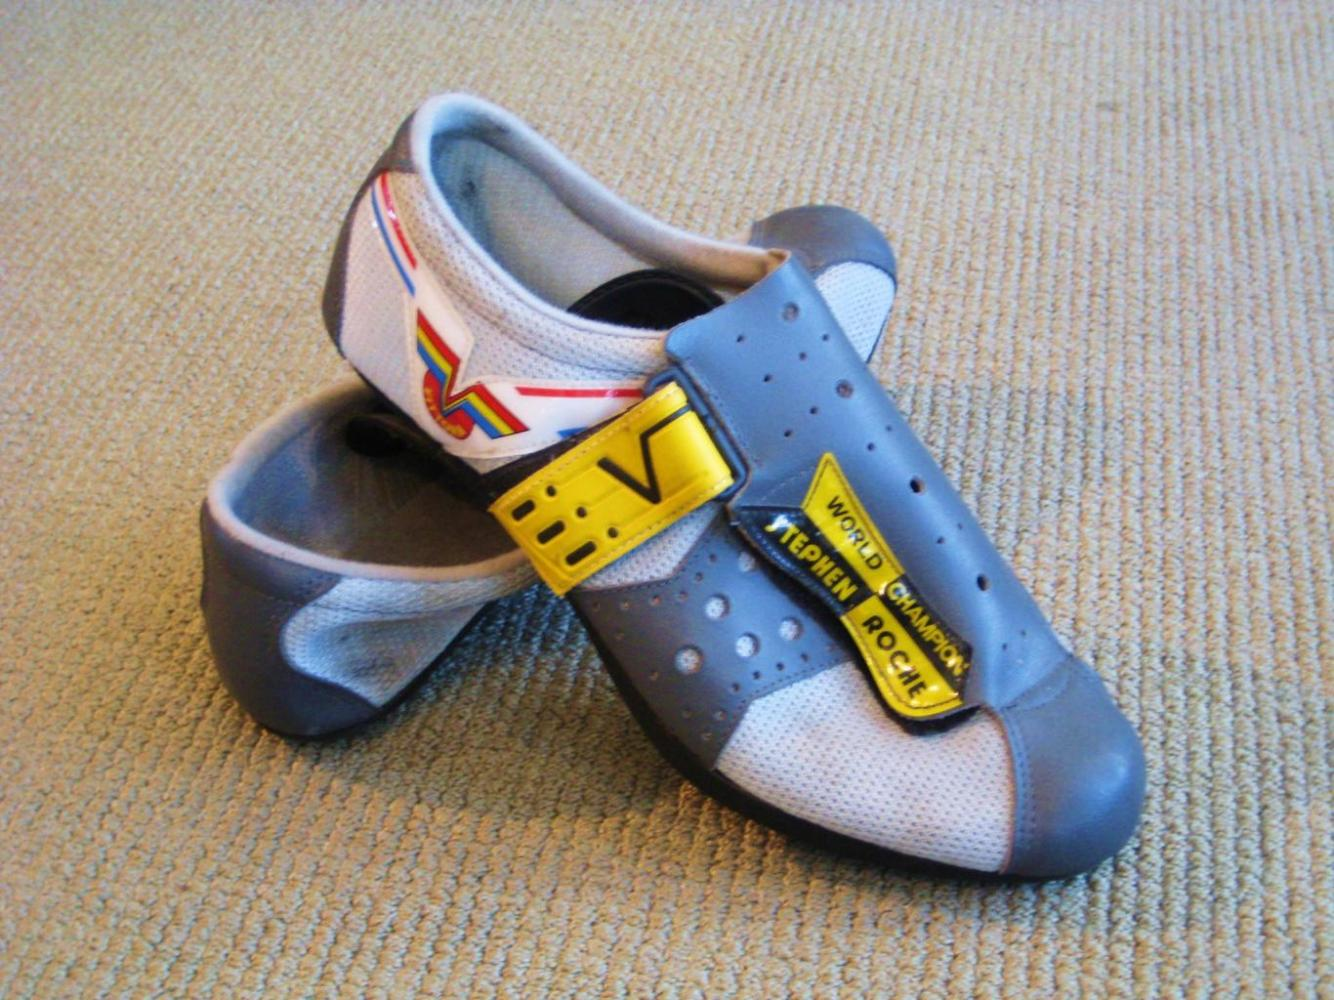 Vittoria-Stephen-Roche-shoes-1988 (1).jpg